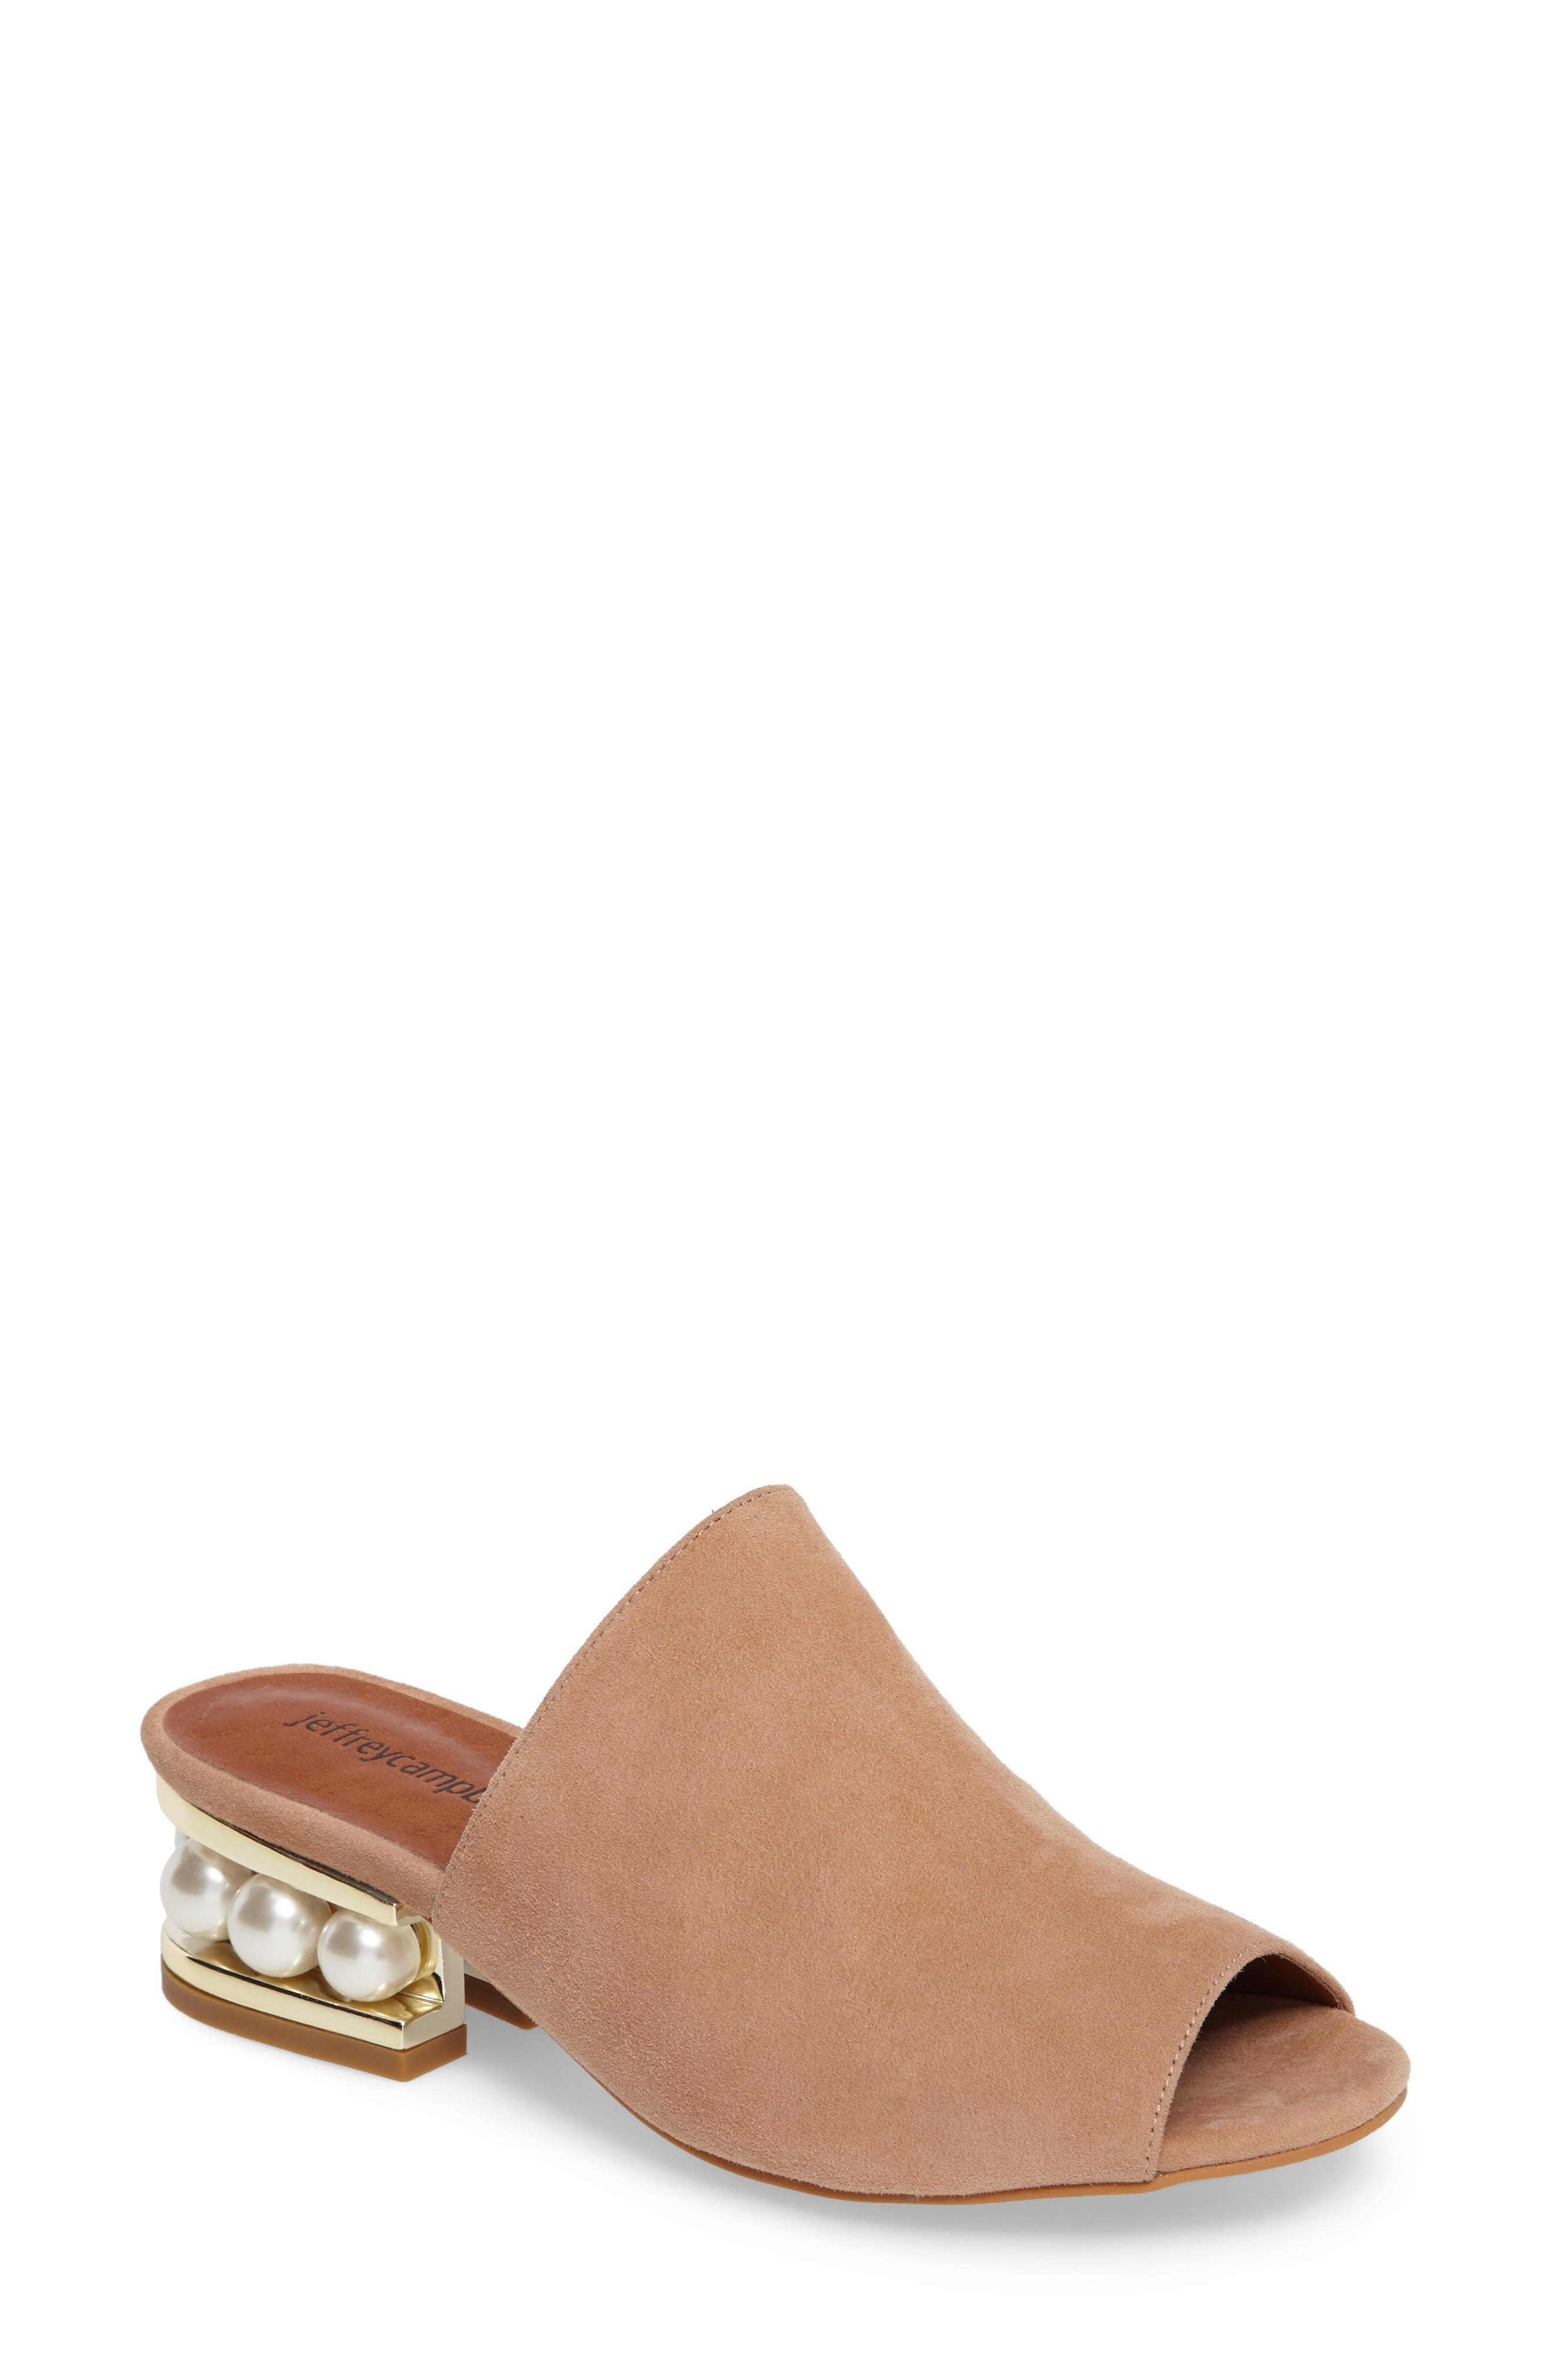 Alternate Image 1 Selected - Jeffrey Campbell Arcita Slide Sandal (Women)